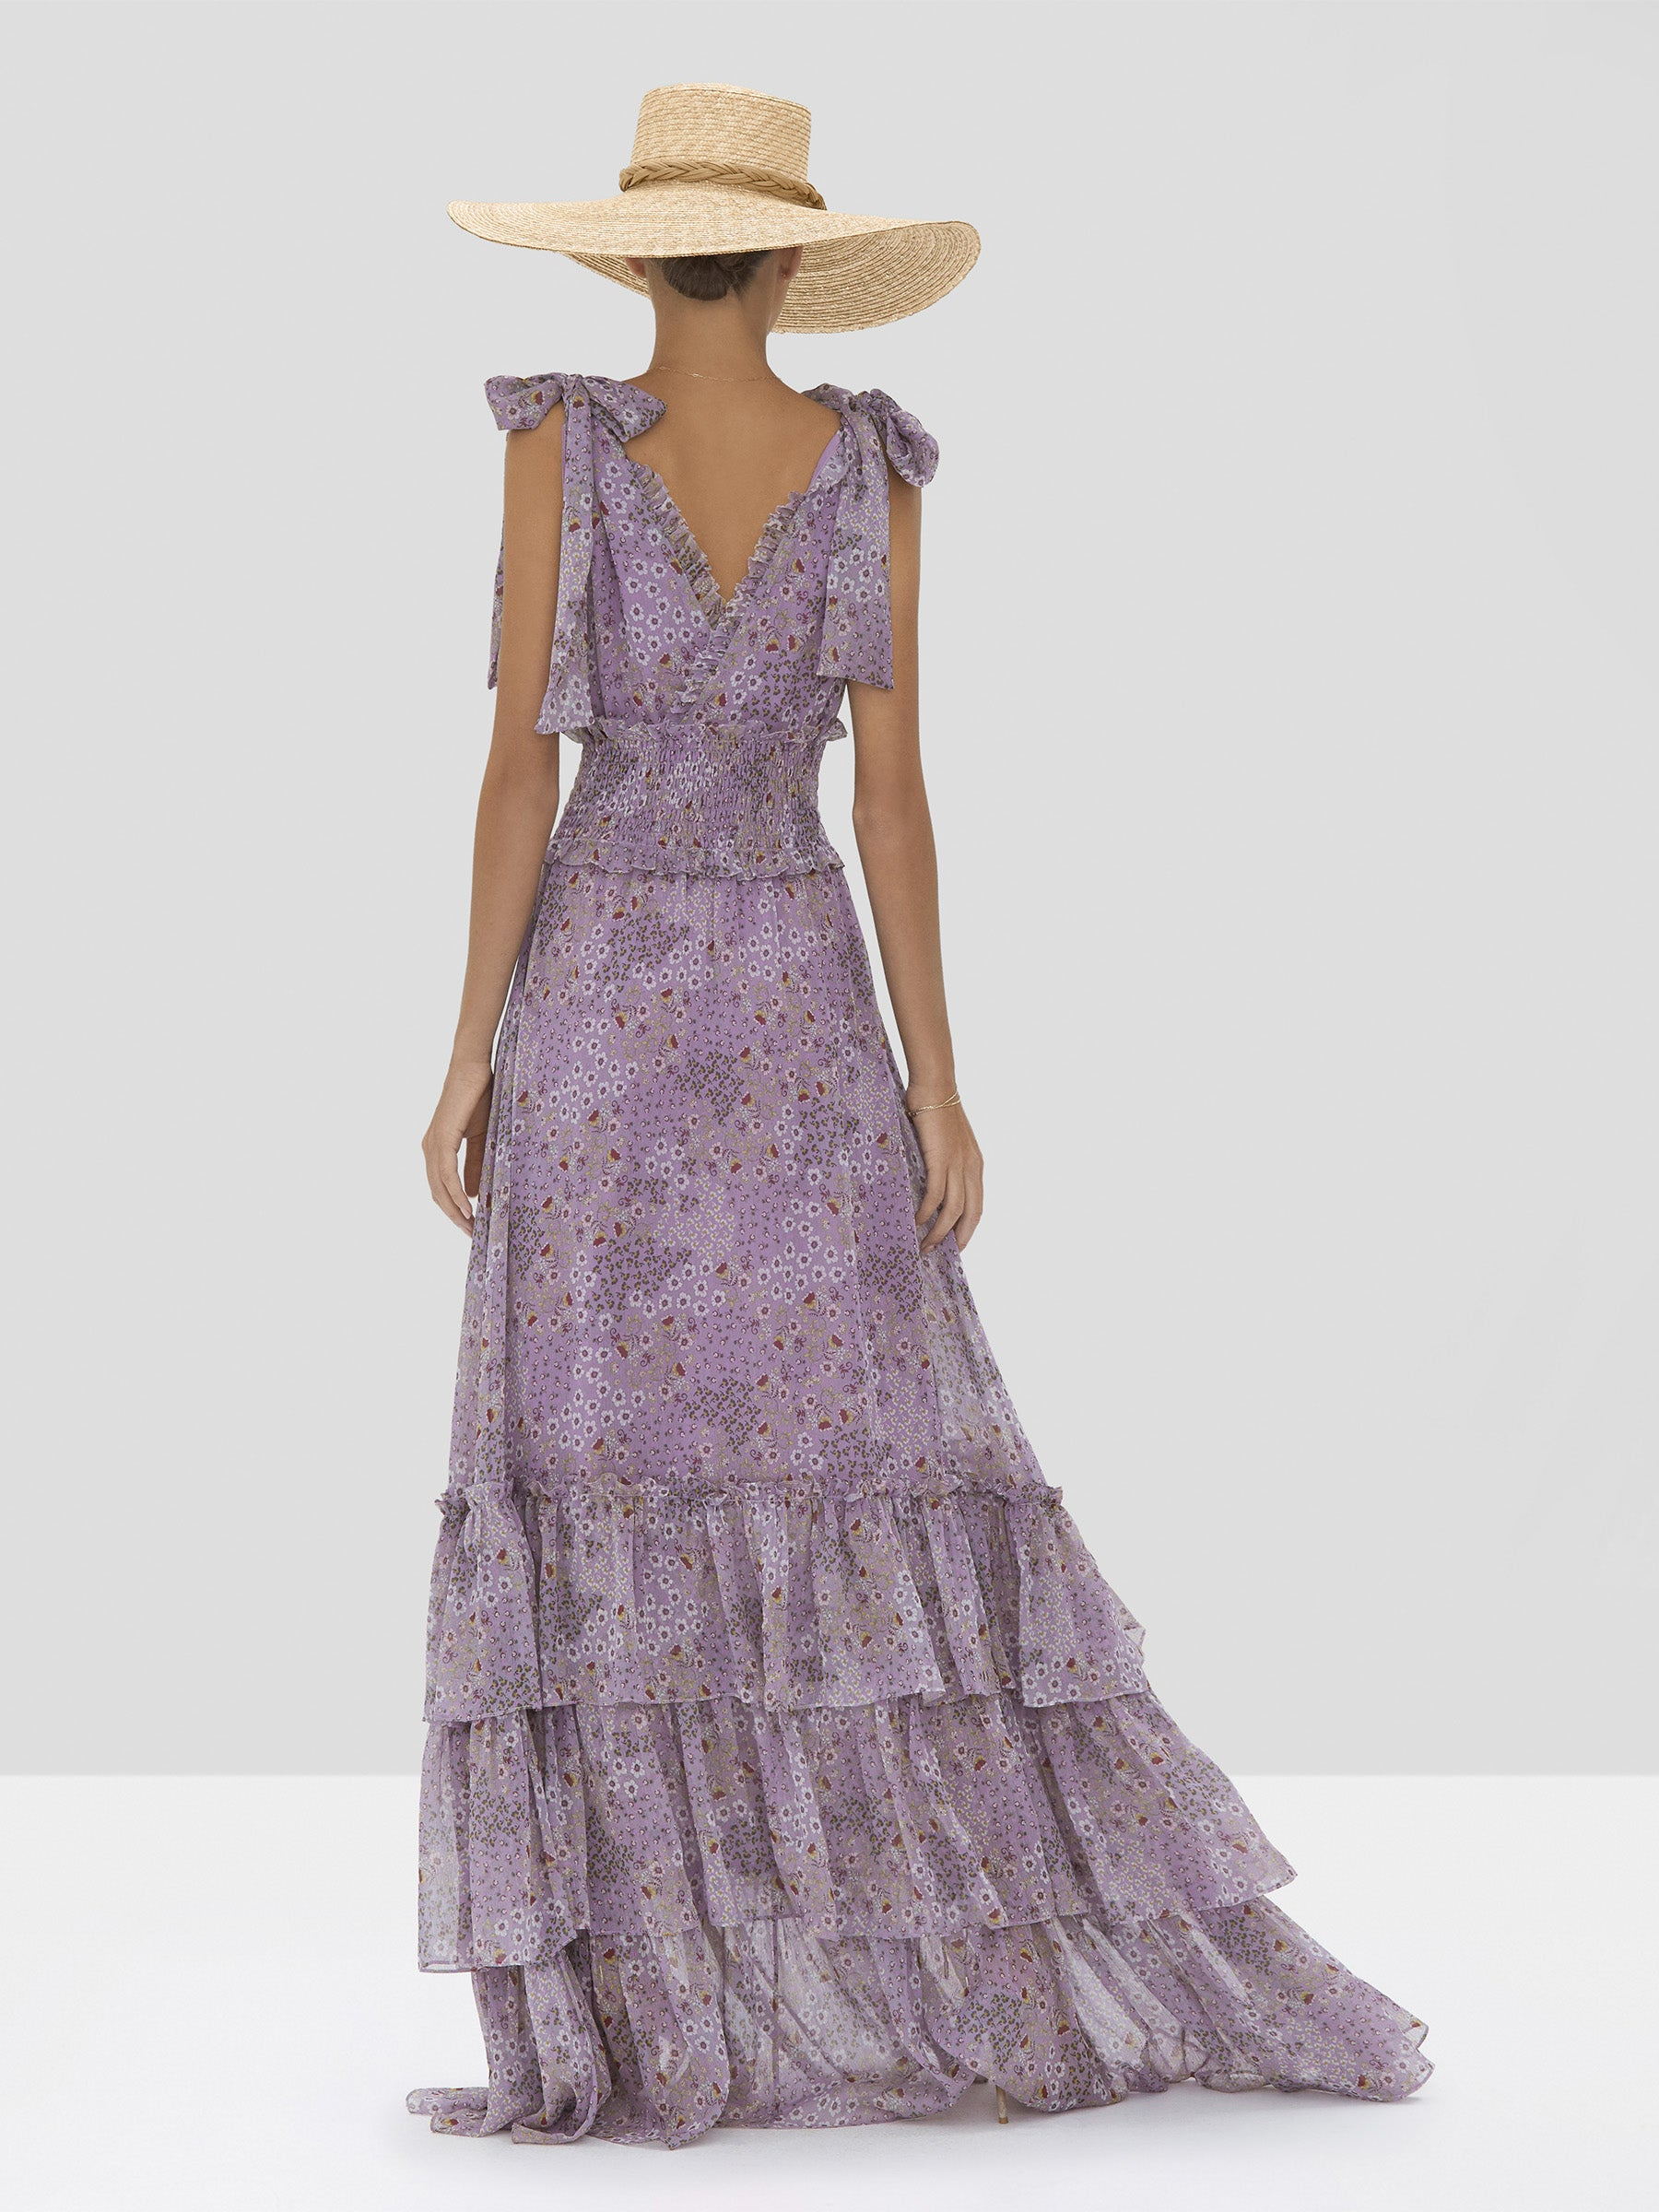 Alexis Clemence Dress in Purple Bouquet from Spring Summer 2020 - Rear View